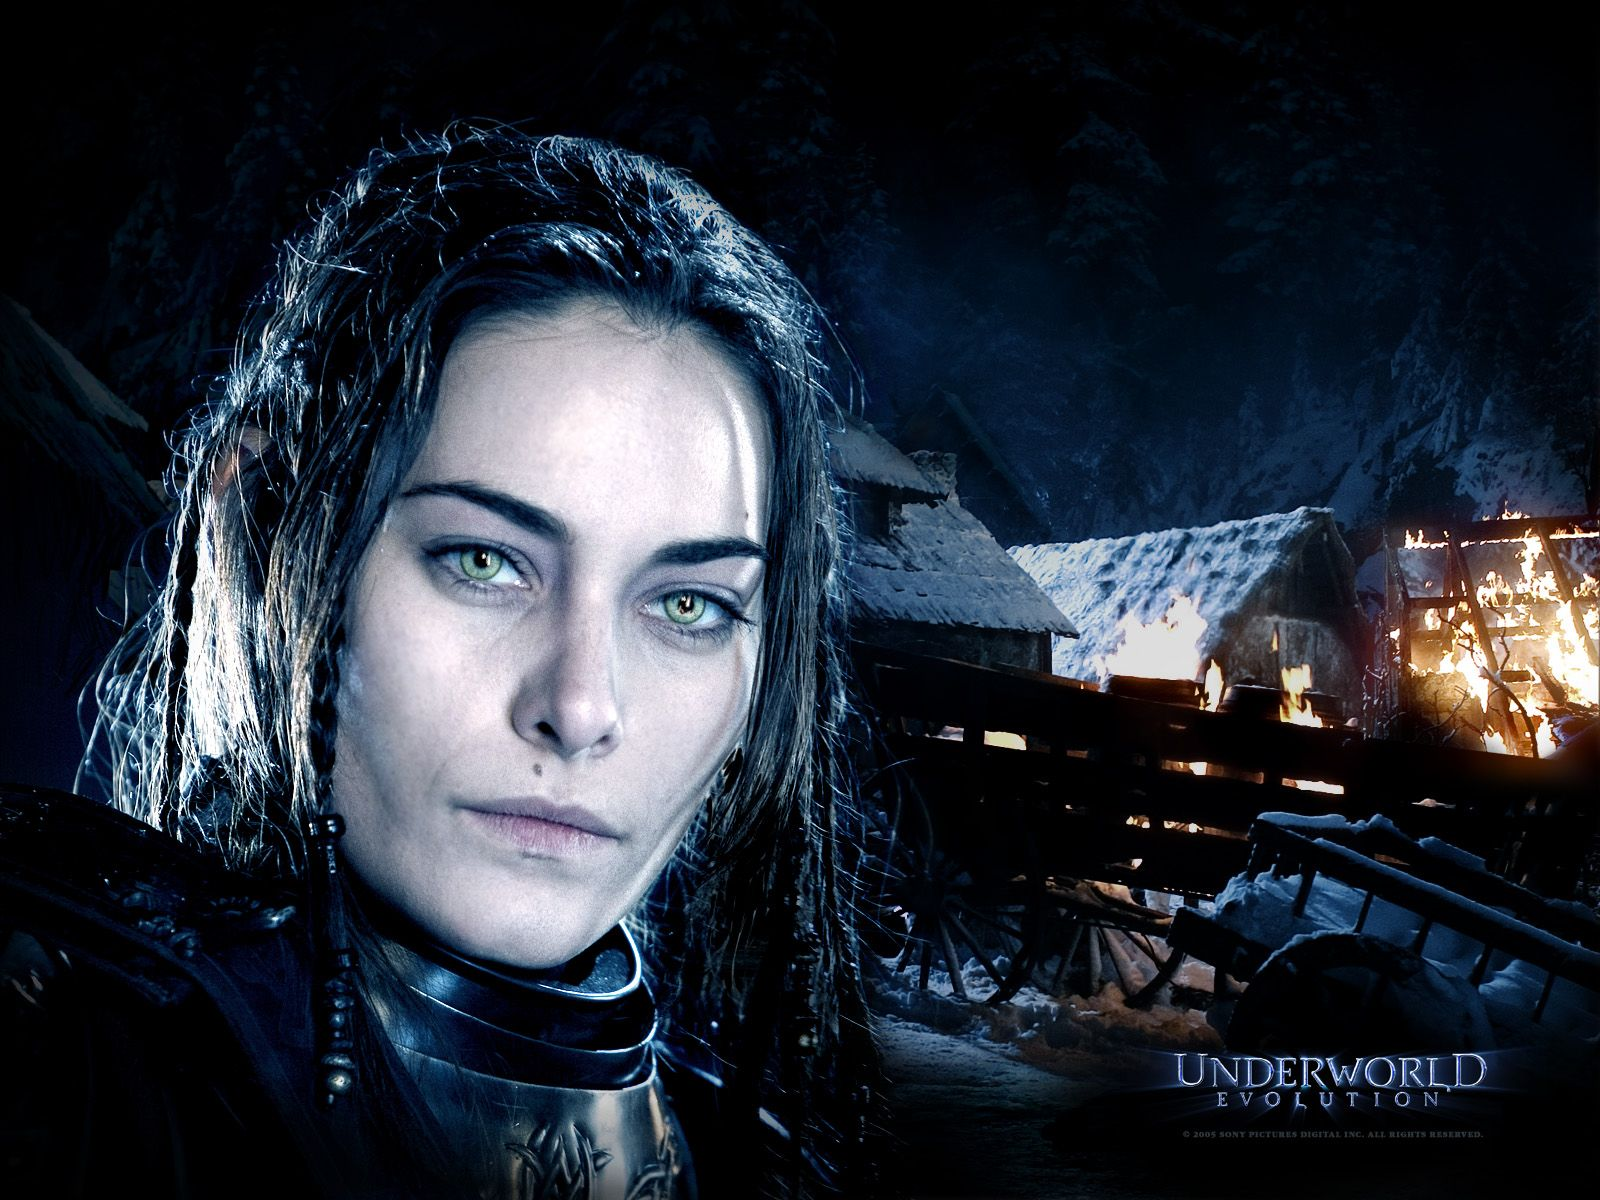 Amelia Underworld Porn - Watch Streaming HD Underworld: Evolution, starring Kate Beckinsale, Scott  Speedman, Bill Nighy